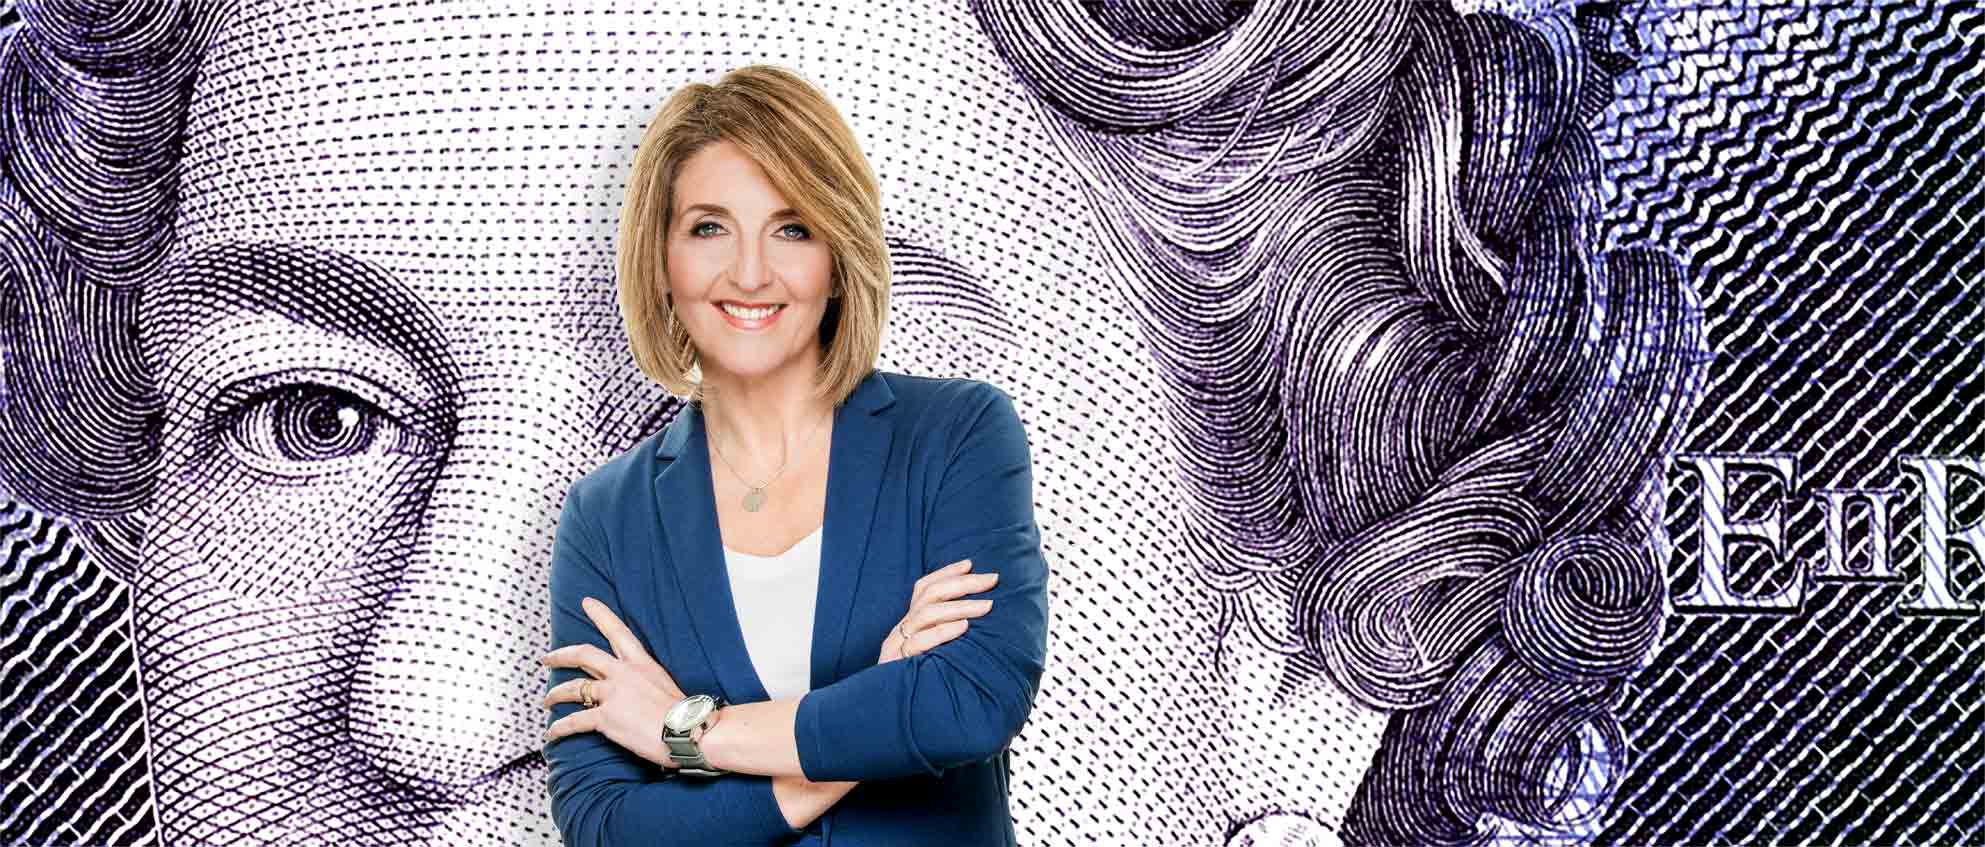 Kaye Adams was not freelance